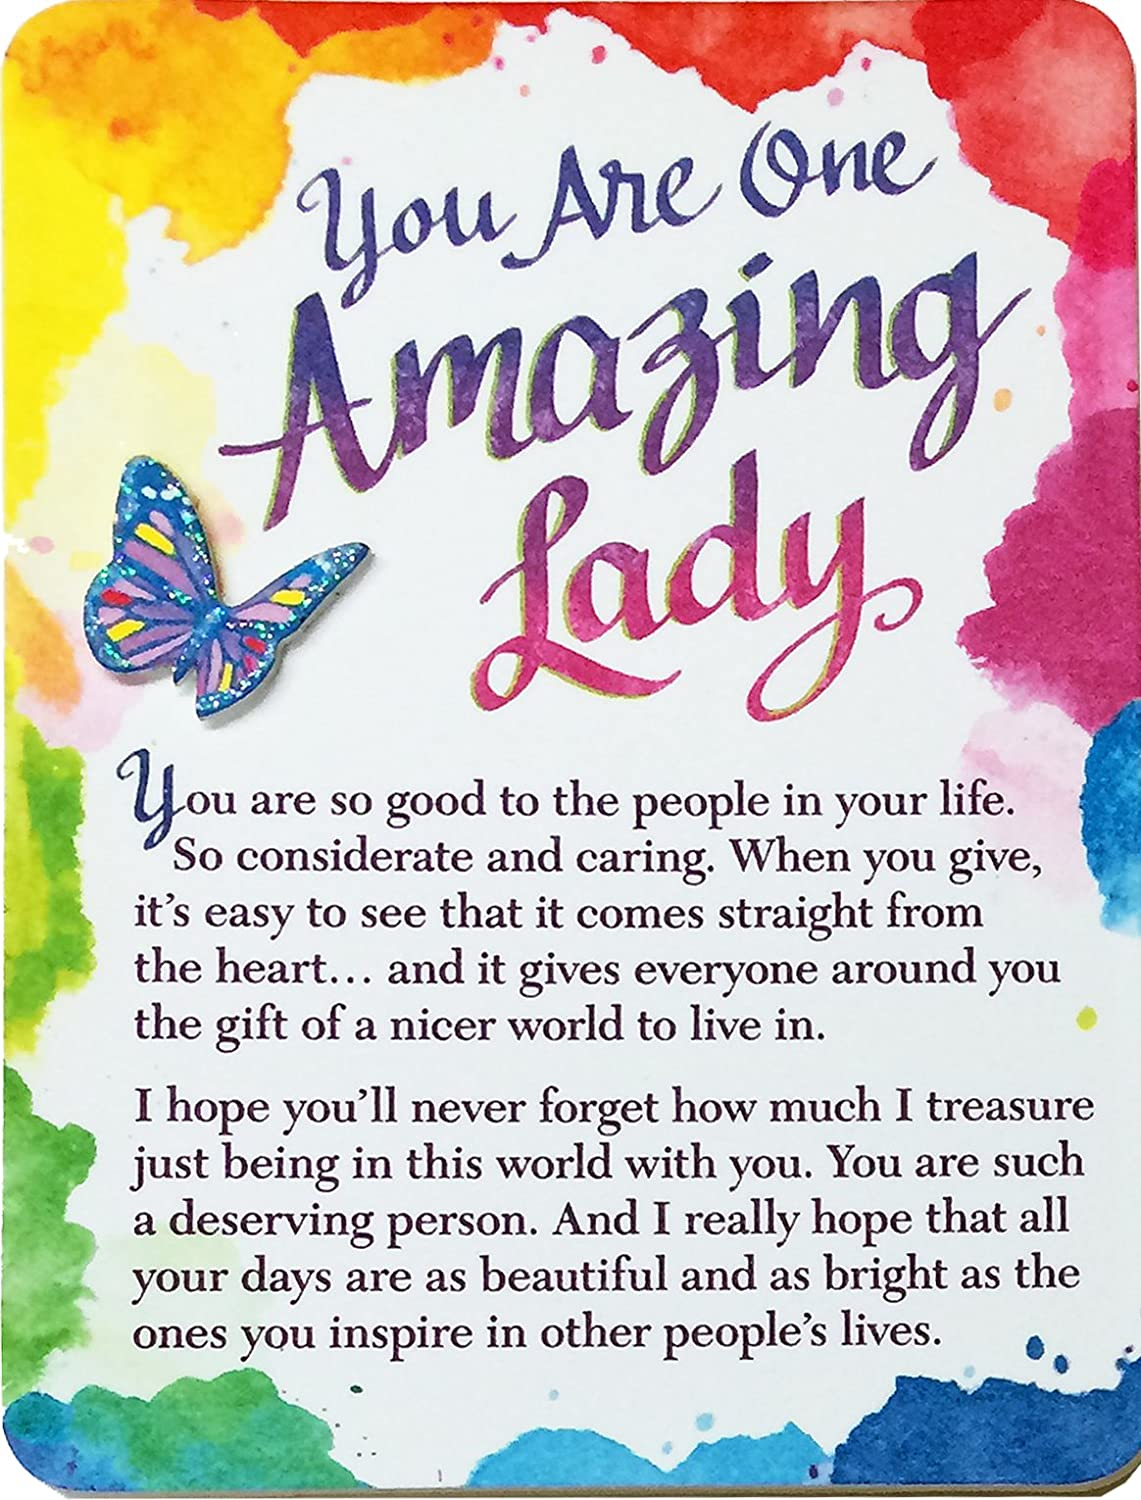 "Blue Mountain Arts Miniature Easel Print with Magnet ""You Are One Amazing Lady"" 4.9 x 3.6 in., Sentimental Mother's Day, Birthday, Anniversary, or Valentine's Day Gift Perfect for Her (MIN214)"